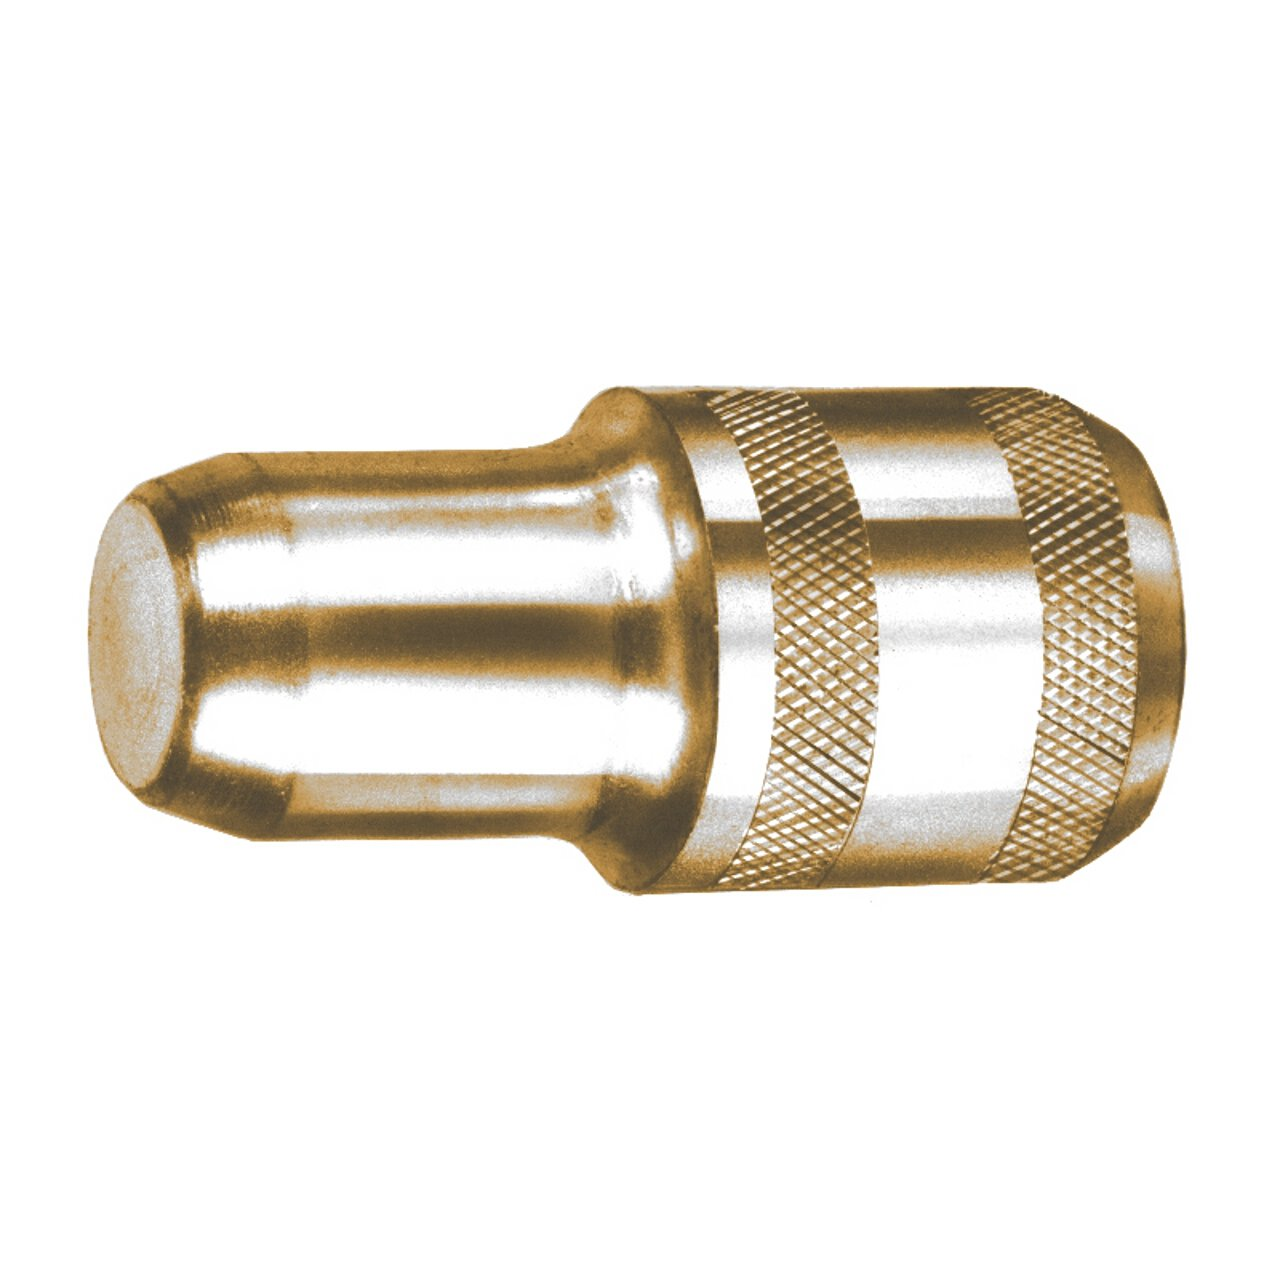 Pasco 4368 1-Inch Copper Flare Punch